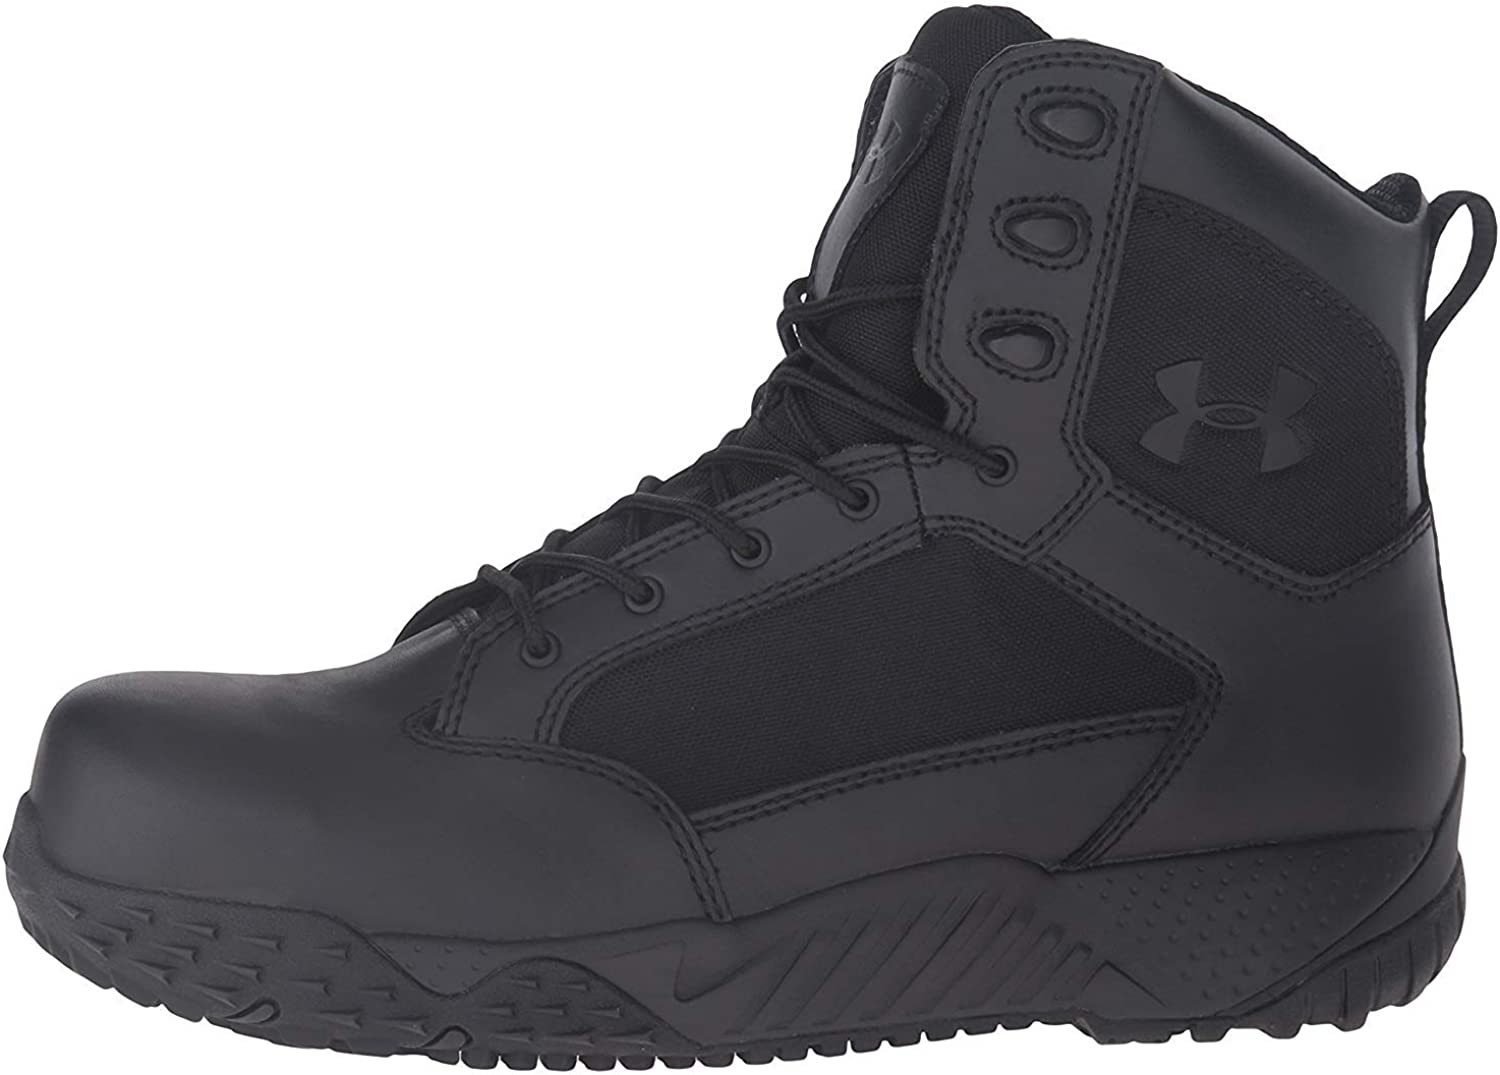 Under Armour Men's Stellar Tac Protect Military and Tactical Boot: Shoes